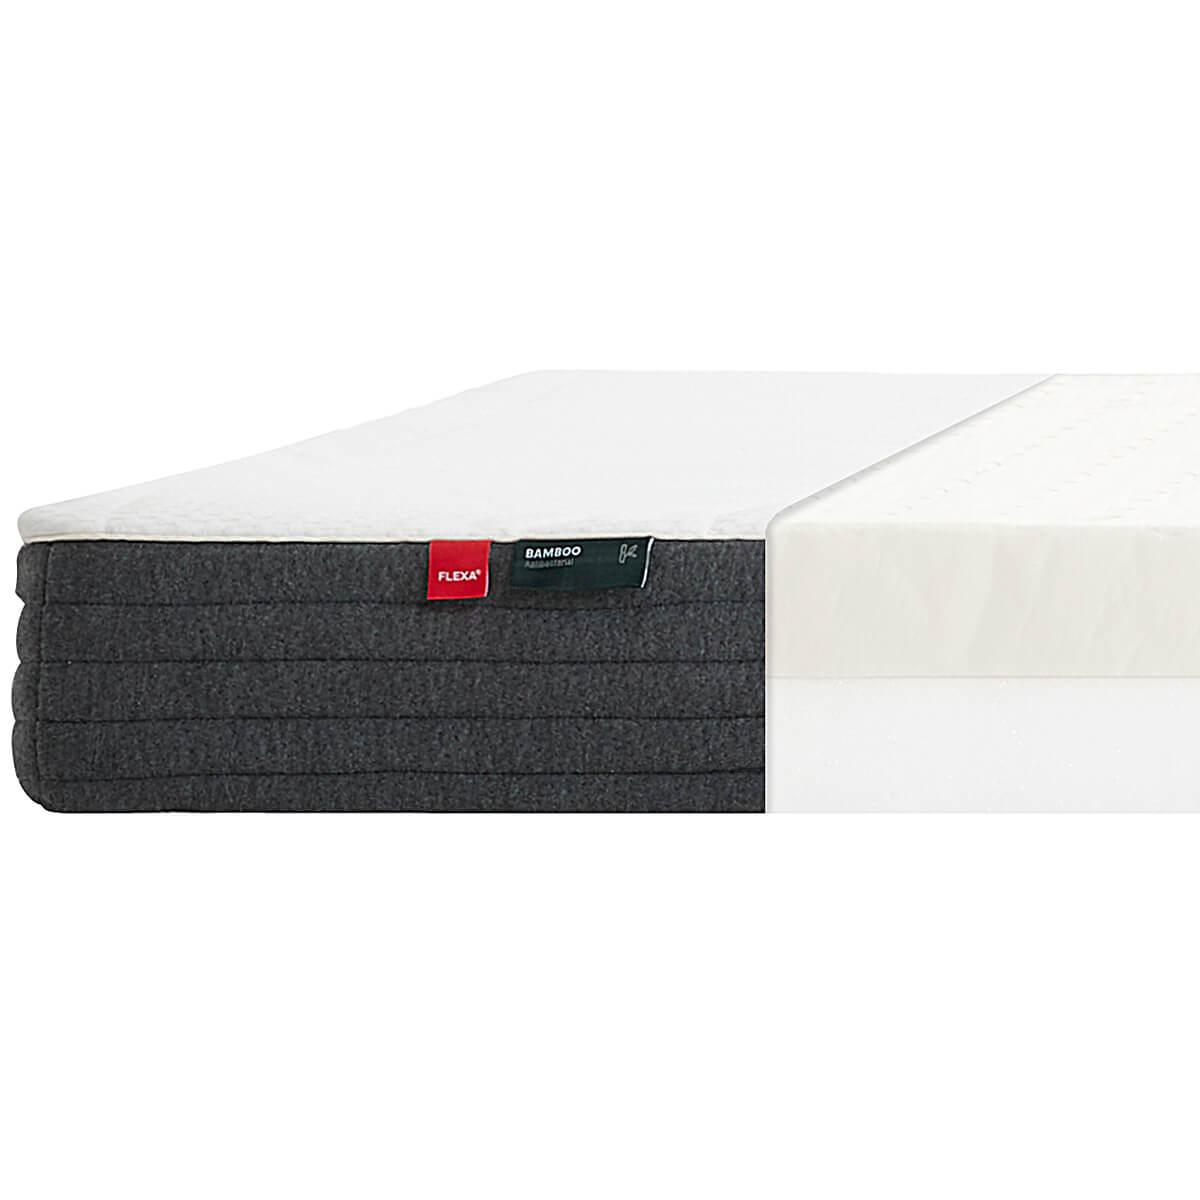 Matelas 90x200cm LATEX SLEEP Flexa bamboo